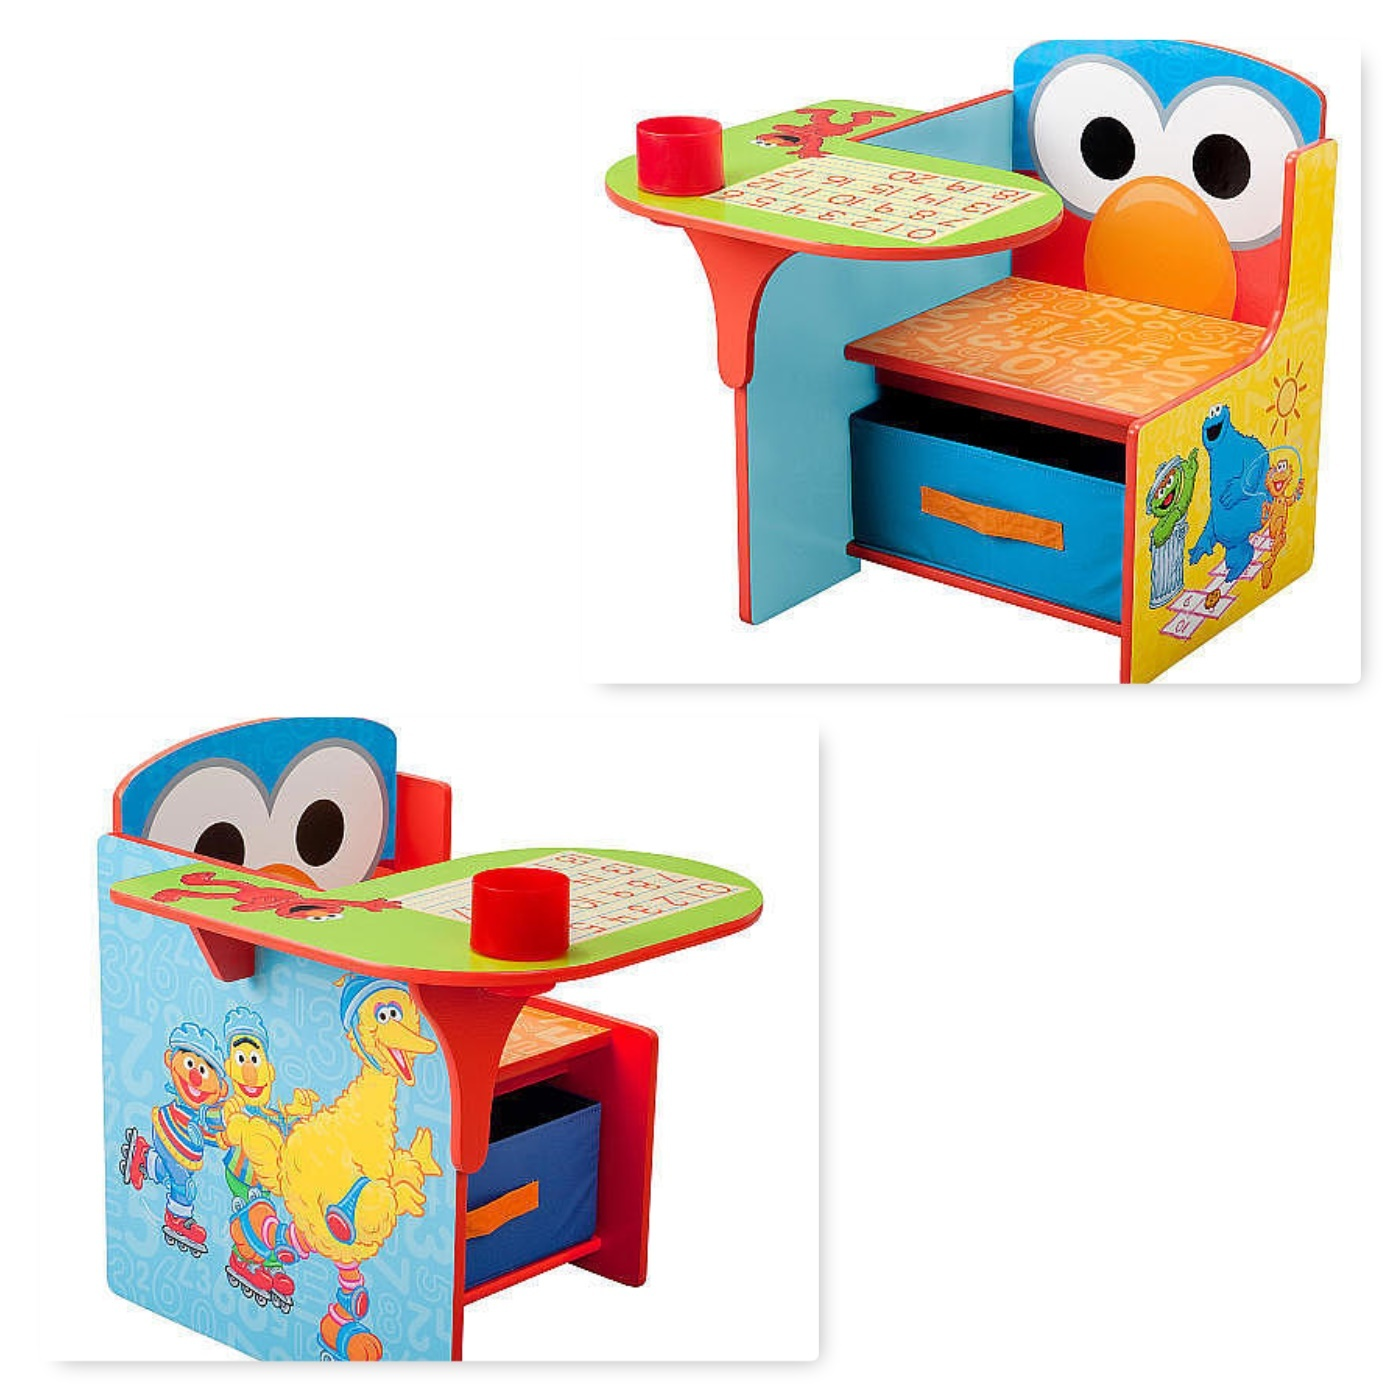 Superb Table Desk Chair Kids Activity Play Set And Similar Items Pabps2019 Chair Design Images Pabps2019Com